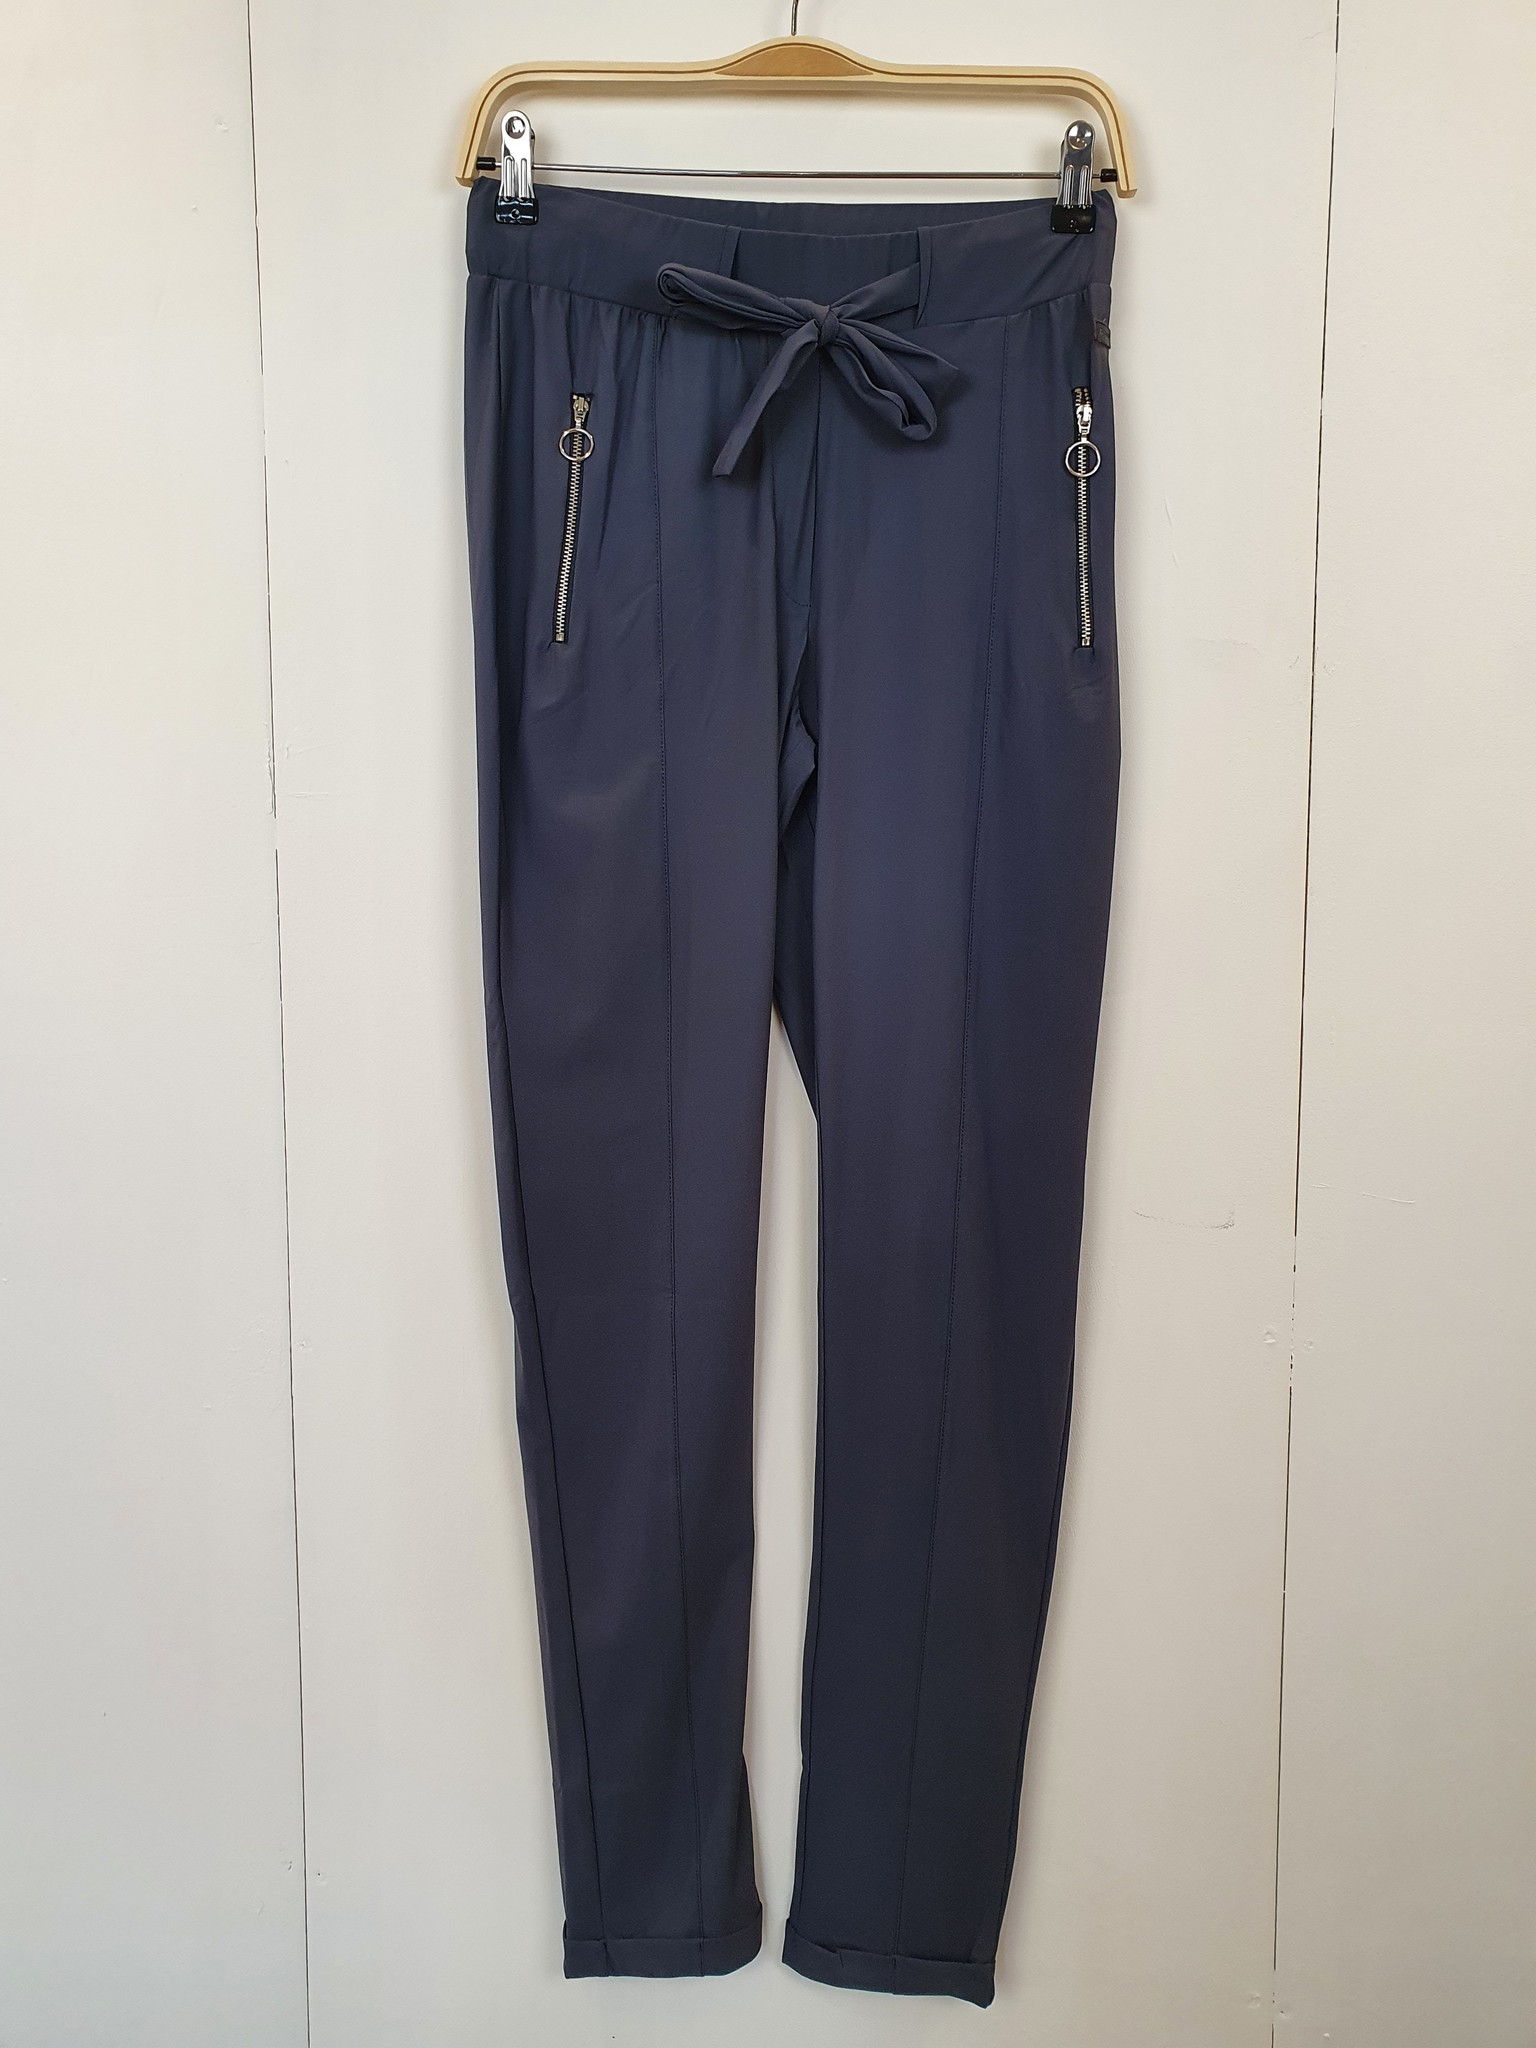 Zoso Zoso Jet travel pant shadow blue